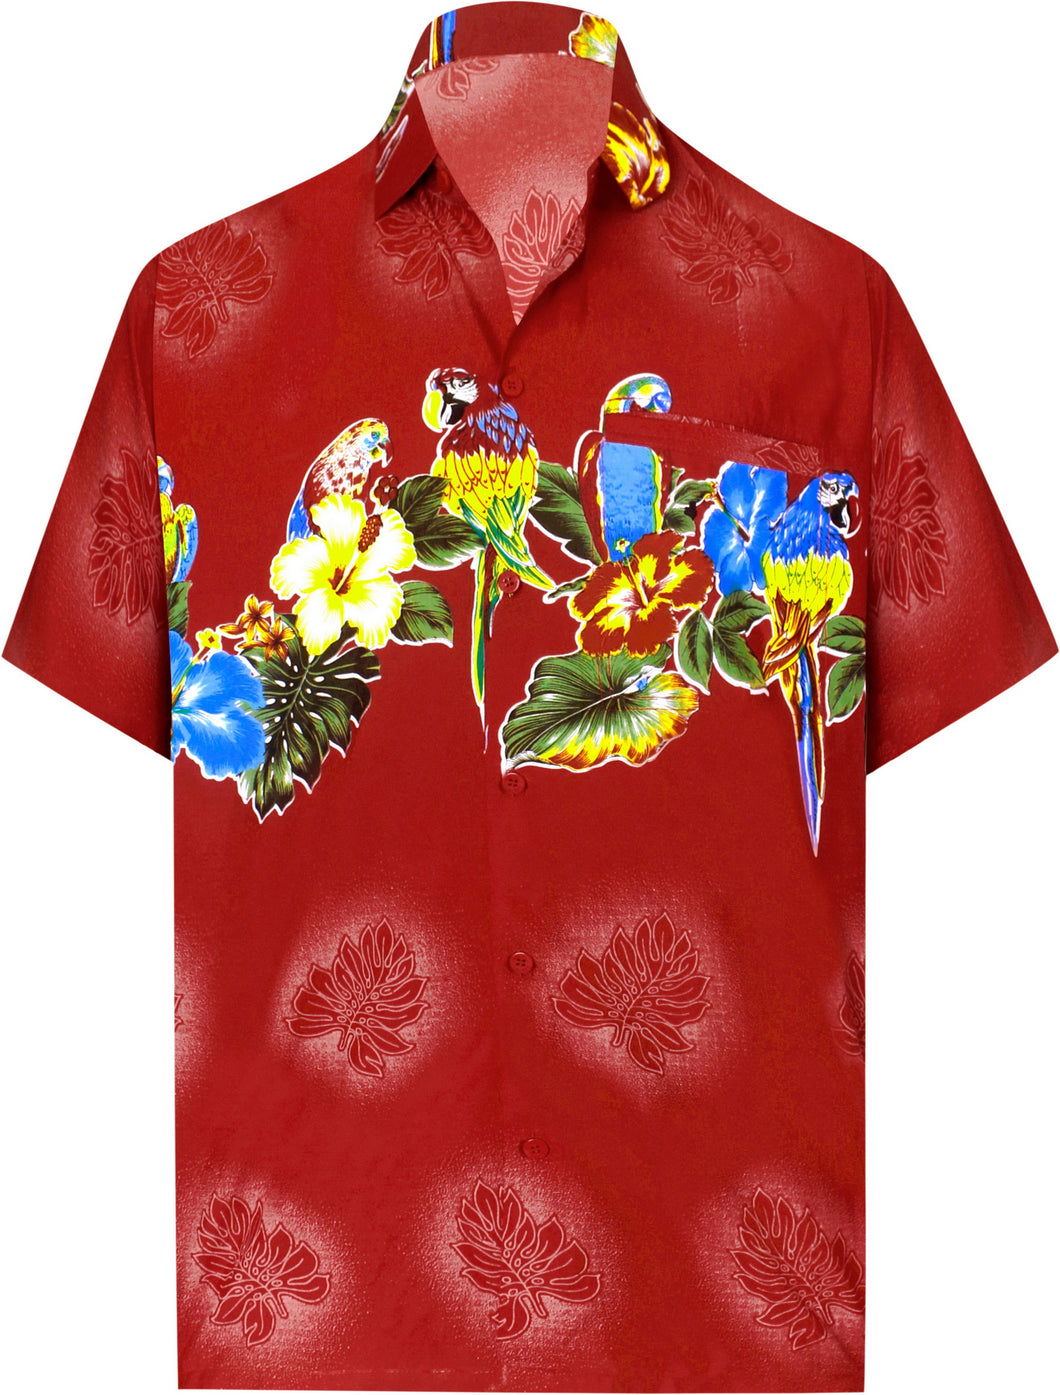 la-leela-shirt-casual-button-down-short-sleeve-beach-shirt-men-aloha-pocket-Blood Red_W369